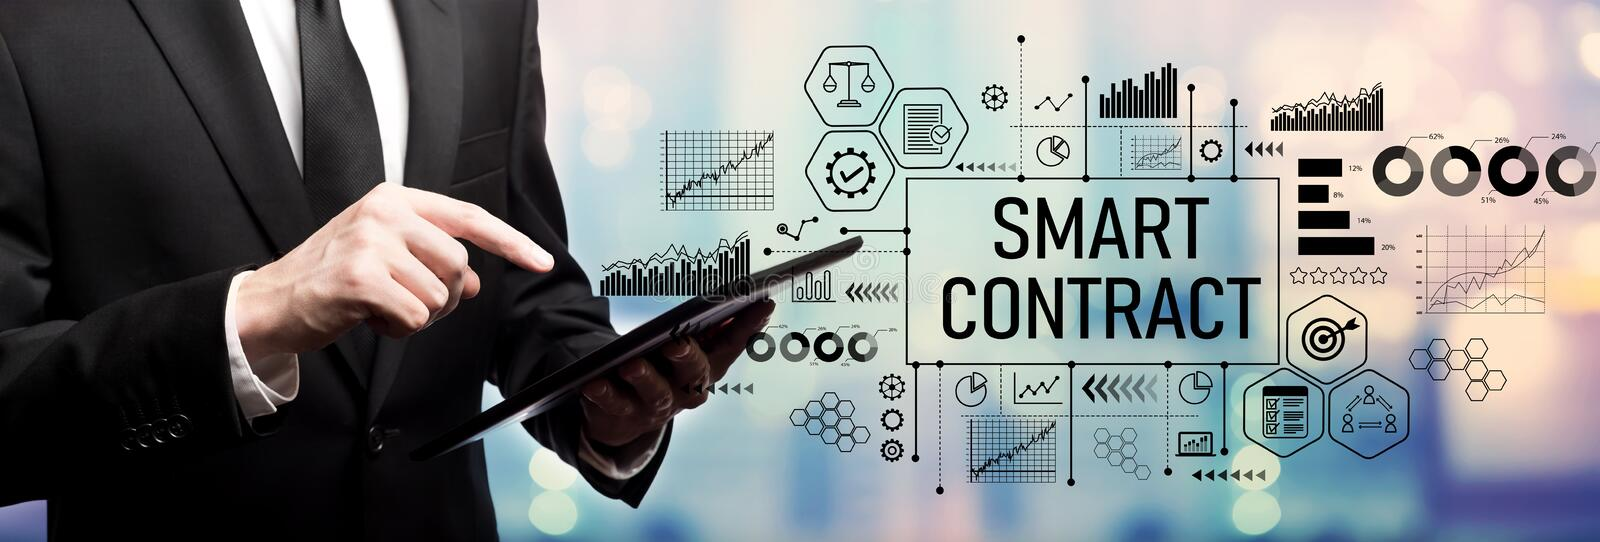 Smart contract concept with businessman stock image